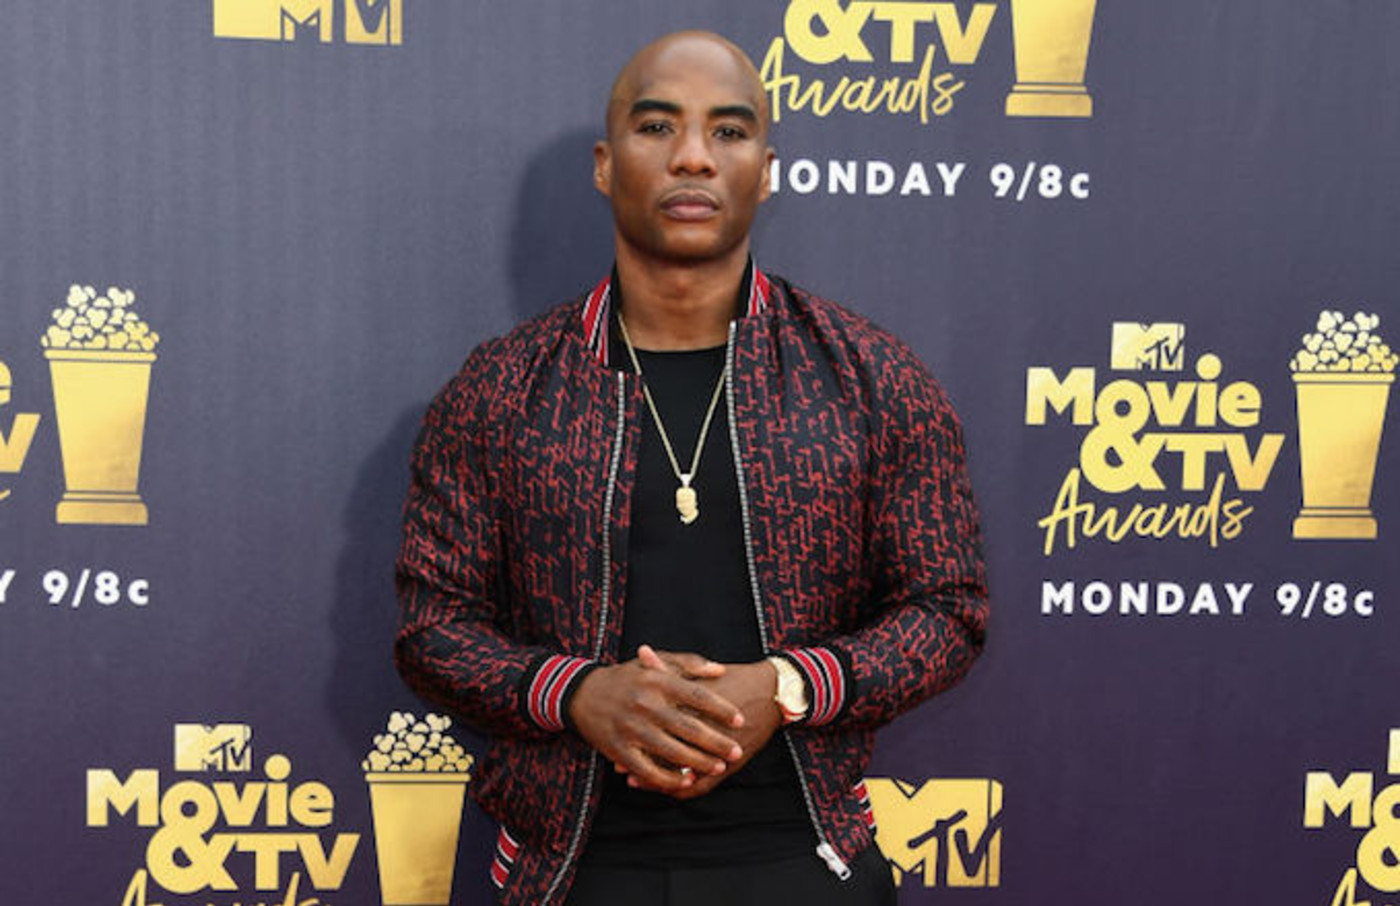 Charlamagne accusation